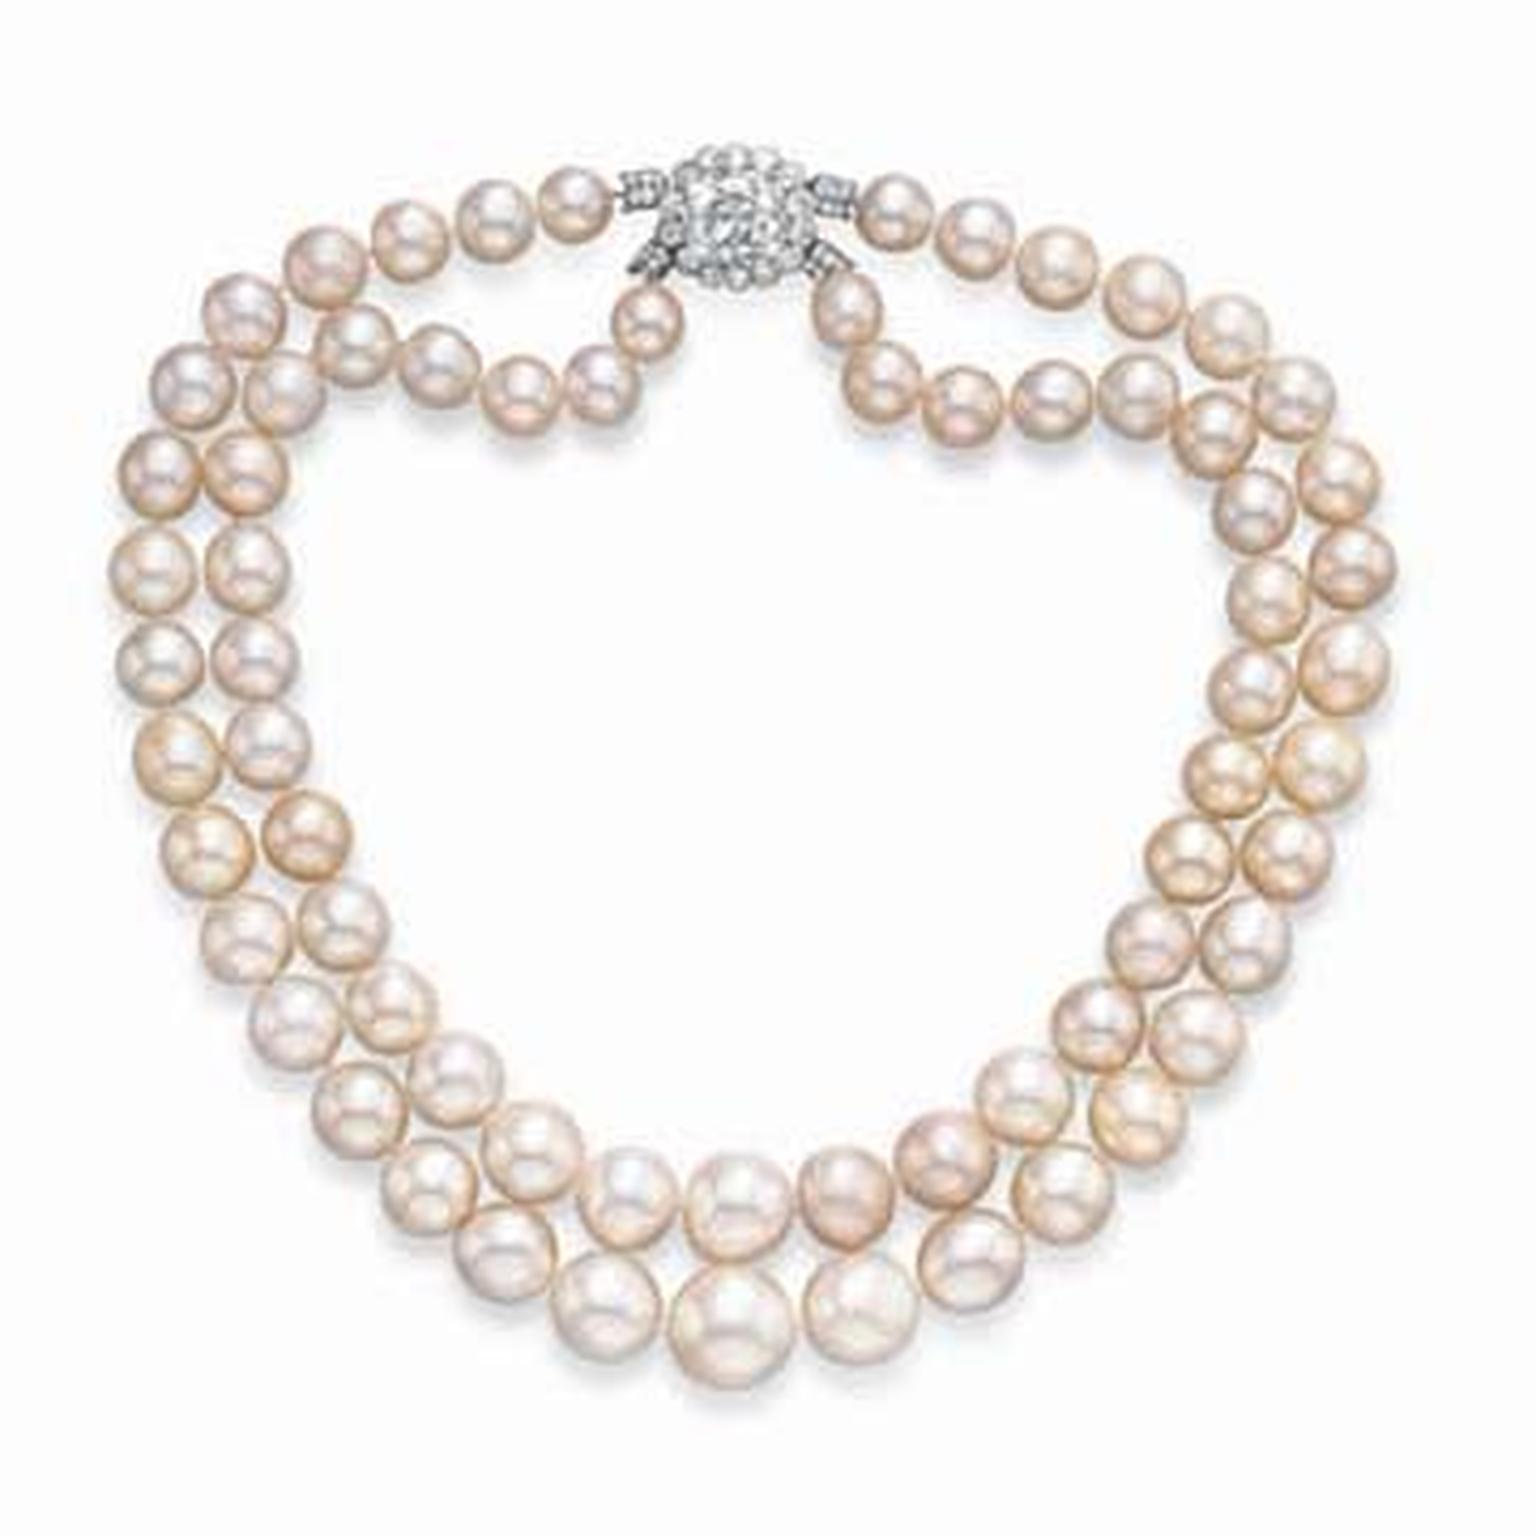 Cartier Baroda two-strand natural pearl necklace